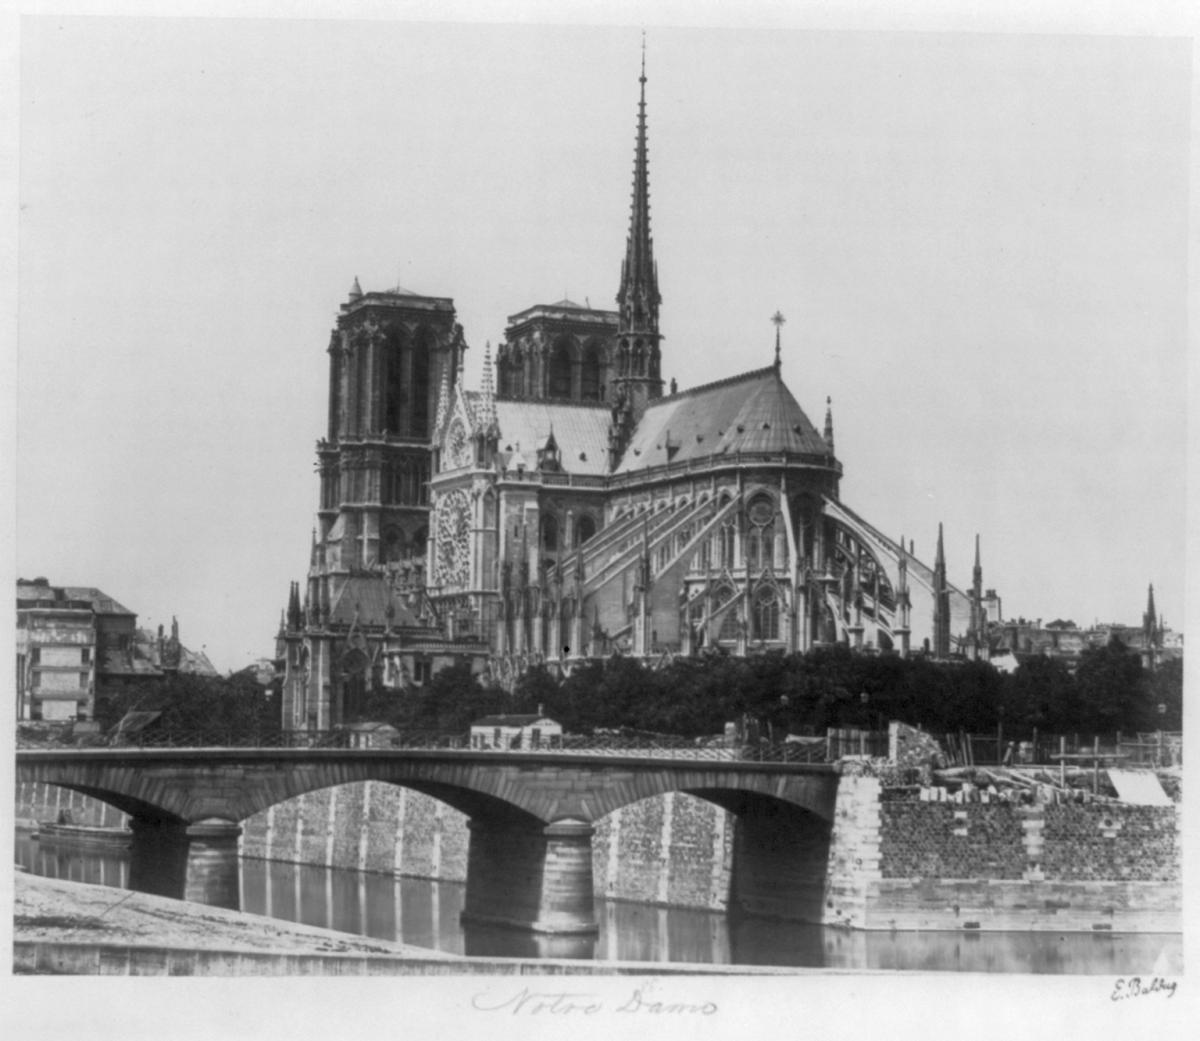 A picture of Notre-Dame Cathedral by Edouard Baldus in 1951.